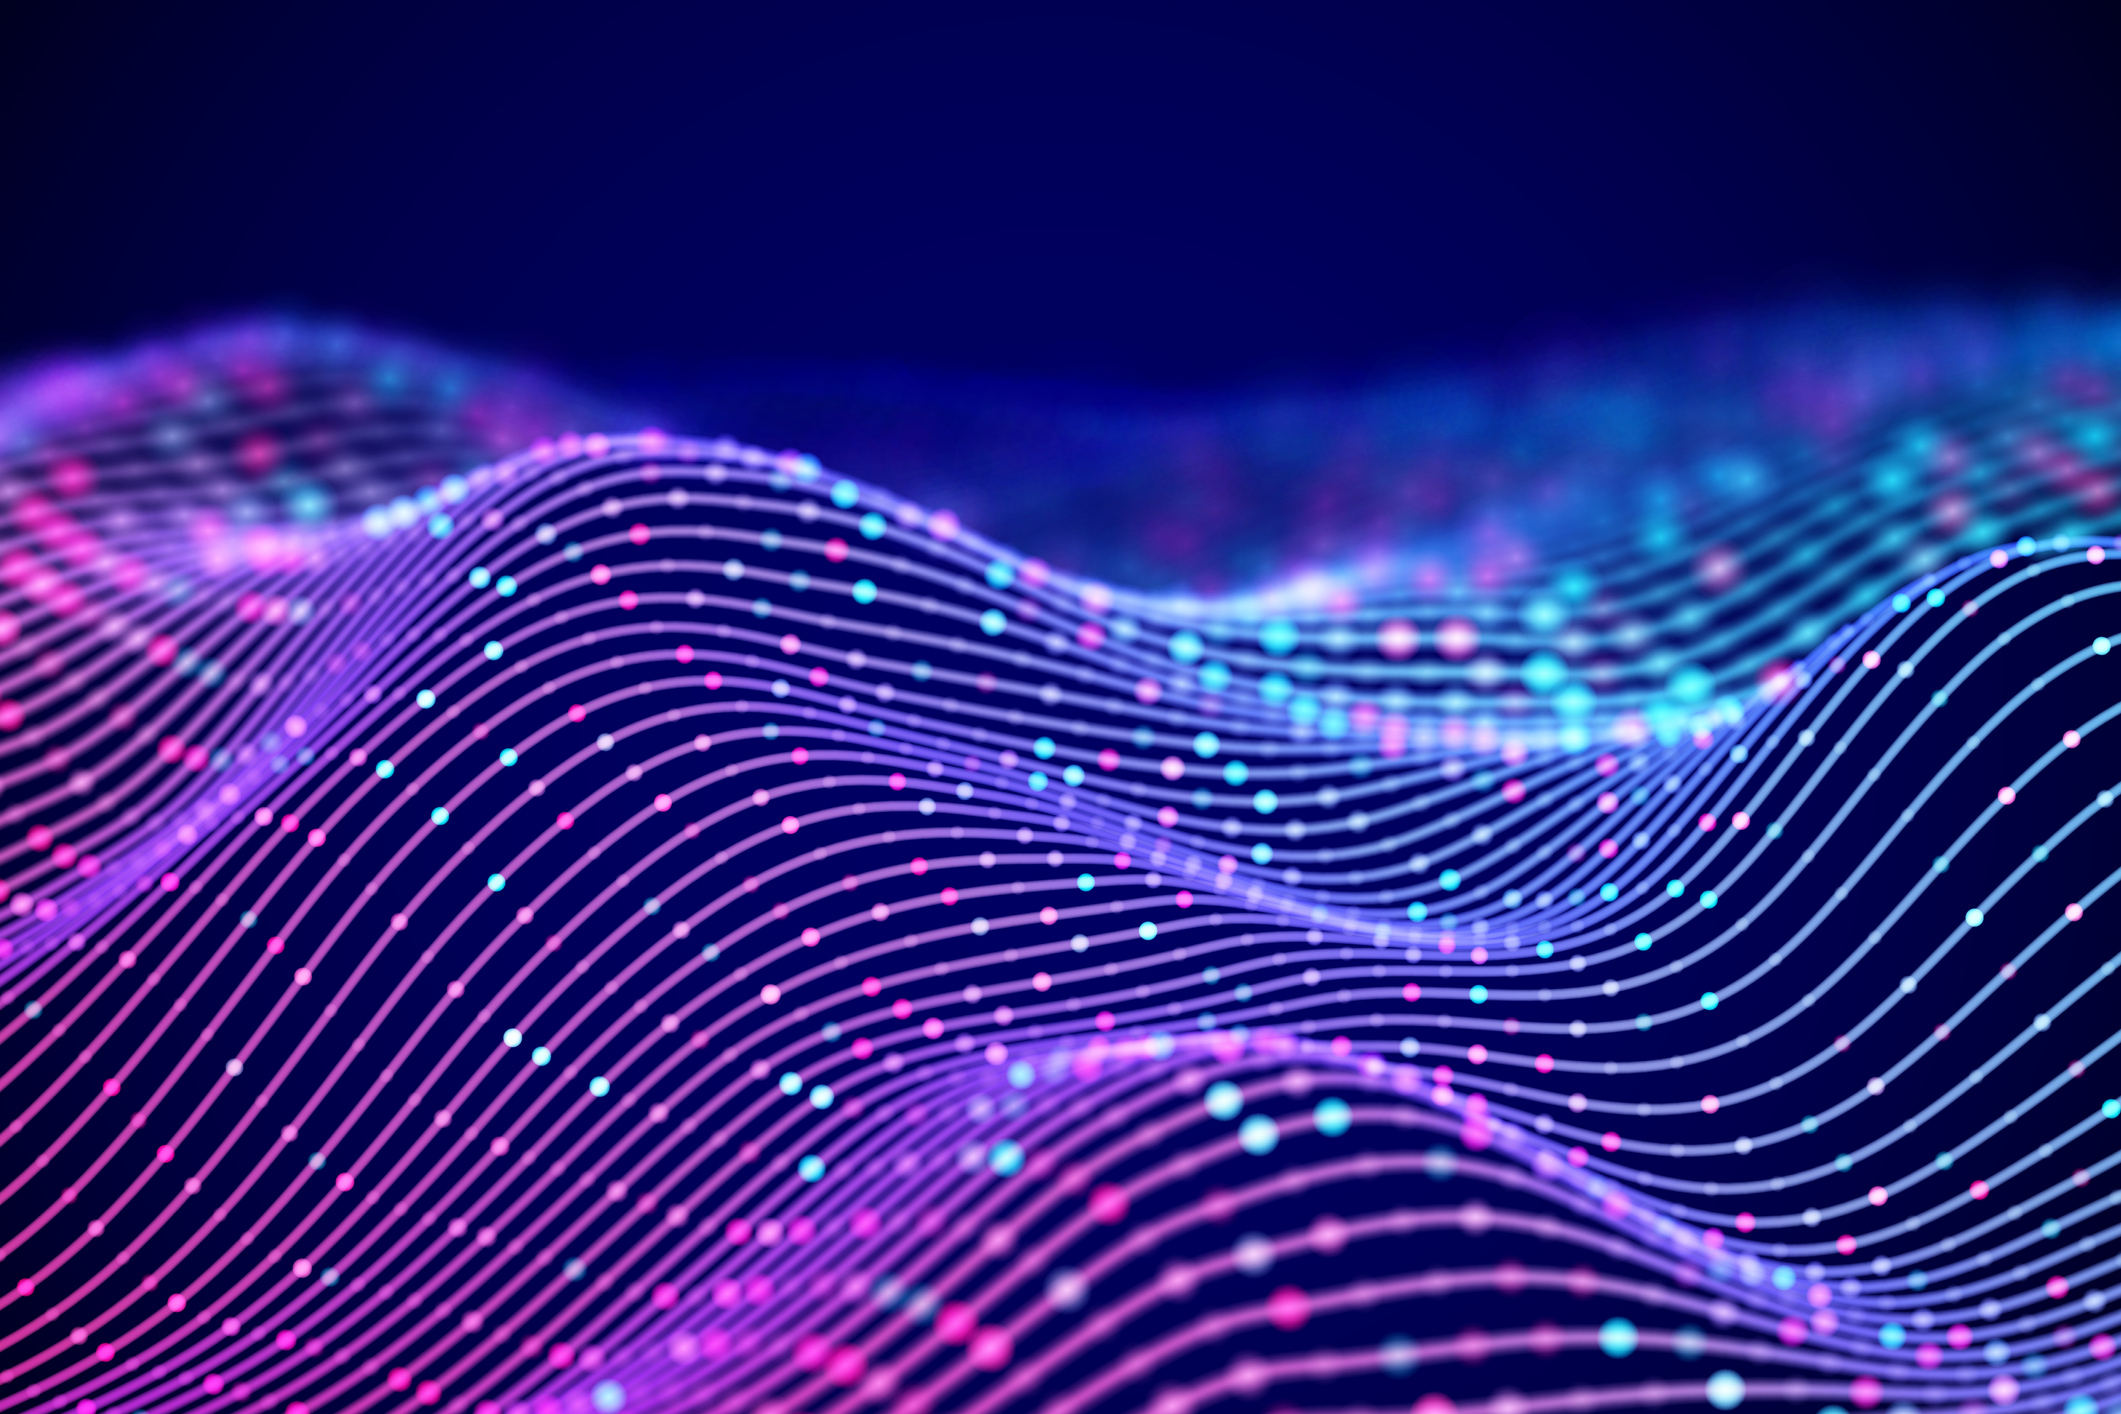 3D Sound waves with colored dots. Big data abstract visualization.